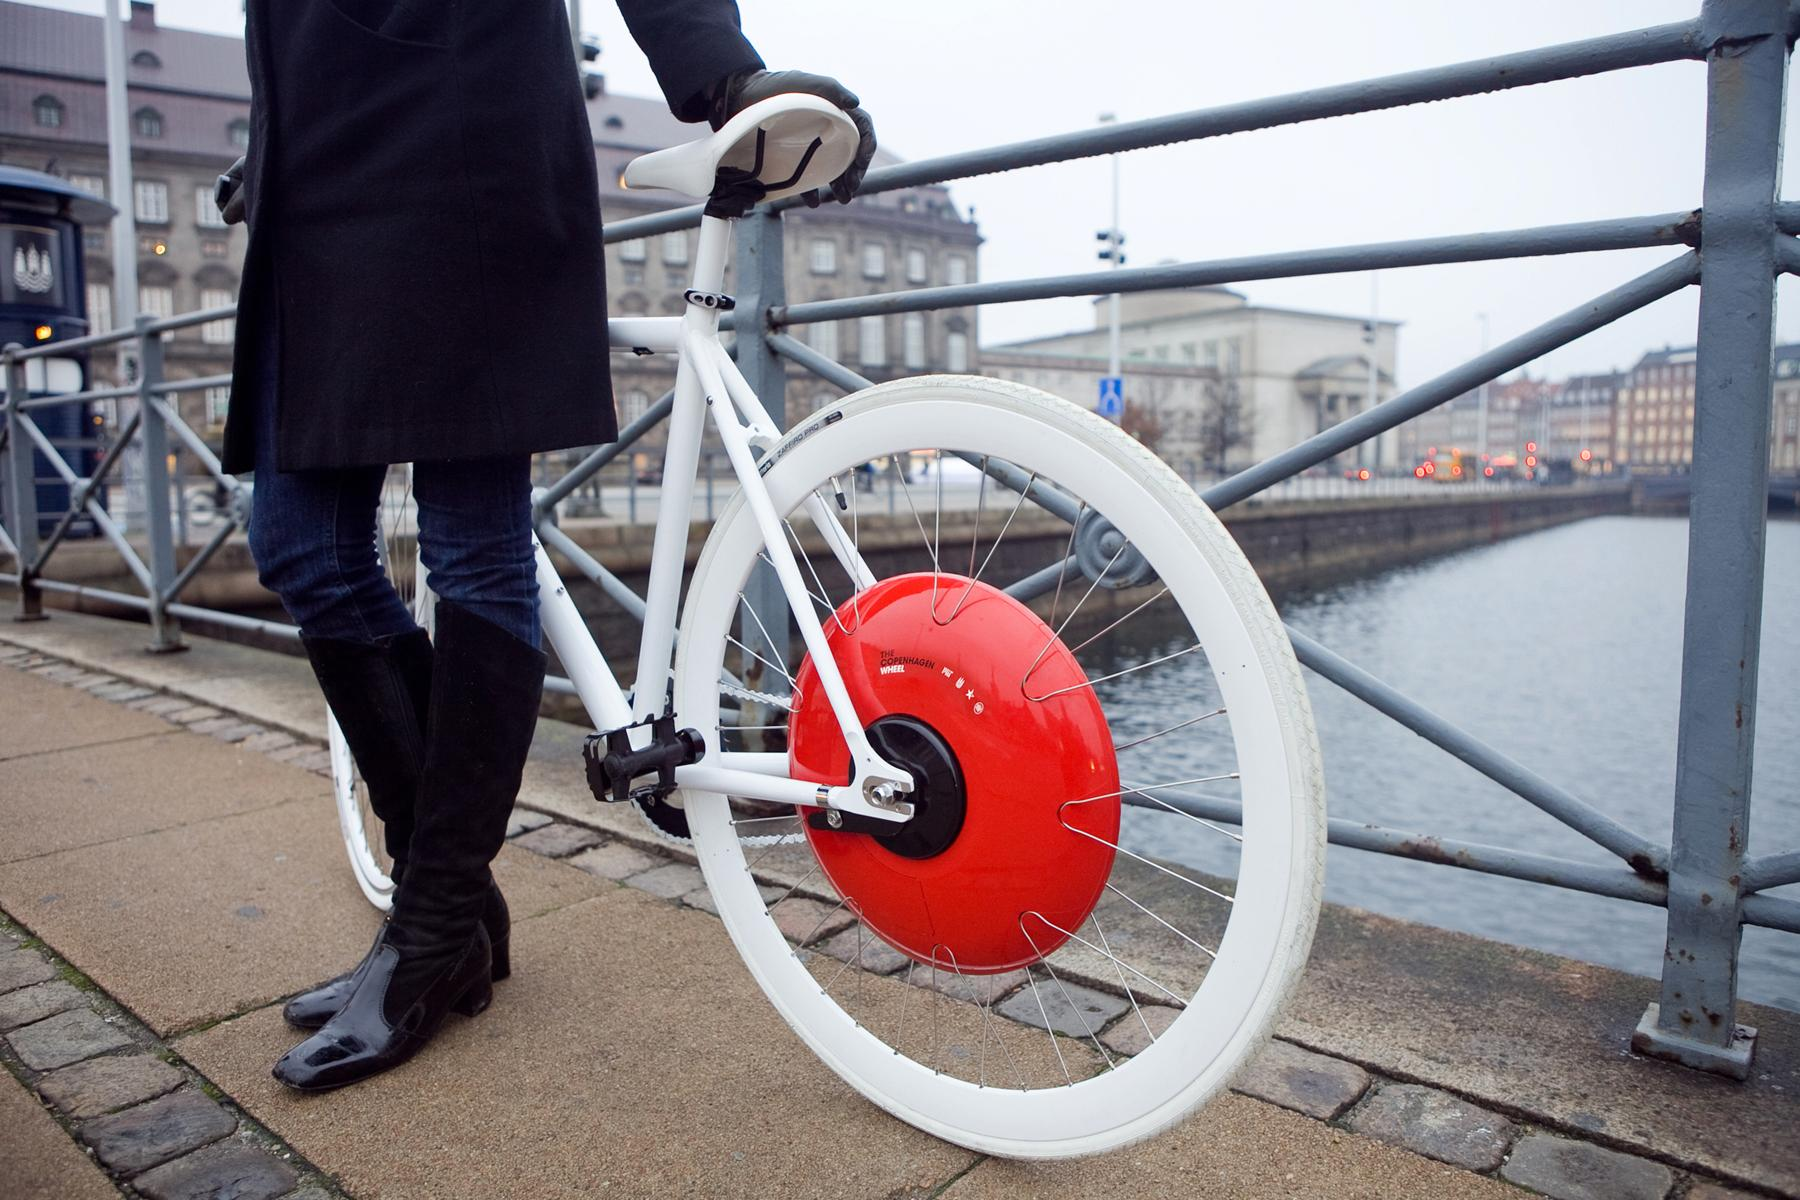 Here's the US National Winner: the Copenhagen Wheel. Christine Outram and a team of MIT students invented of a wheel that turns a regular bike into a smart, electric hybrid. The Copenhagen Wheel allows riders to capture the energy dissipated when breaking